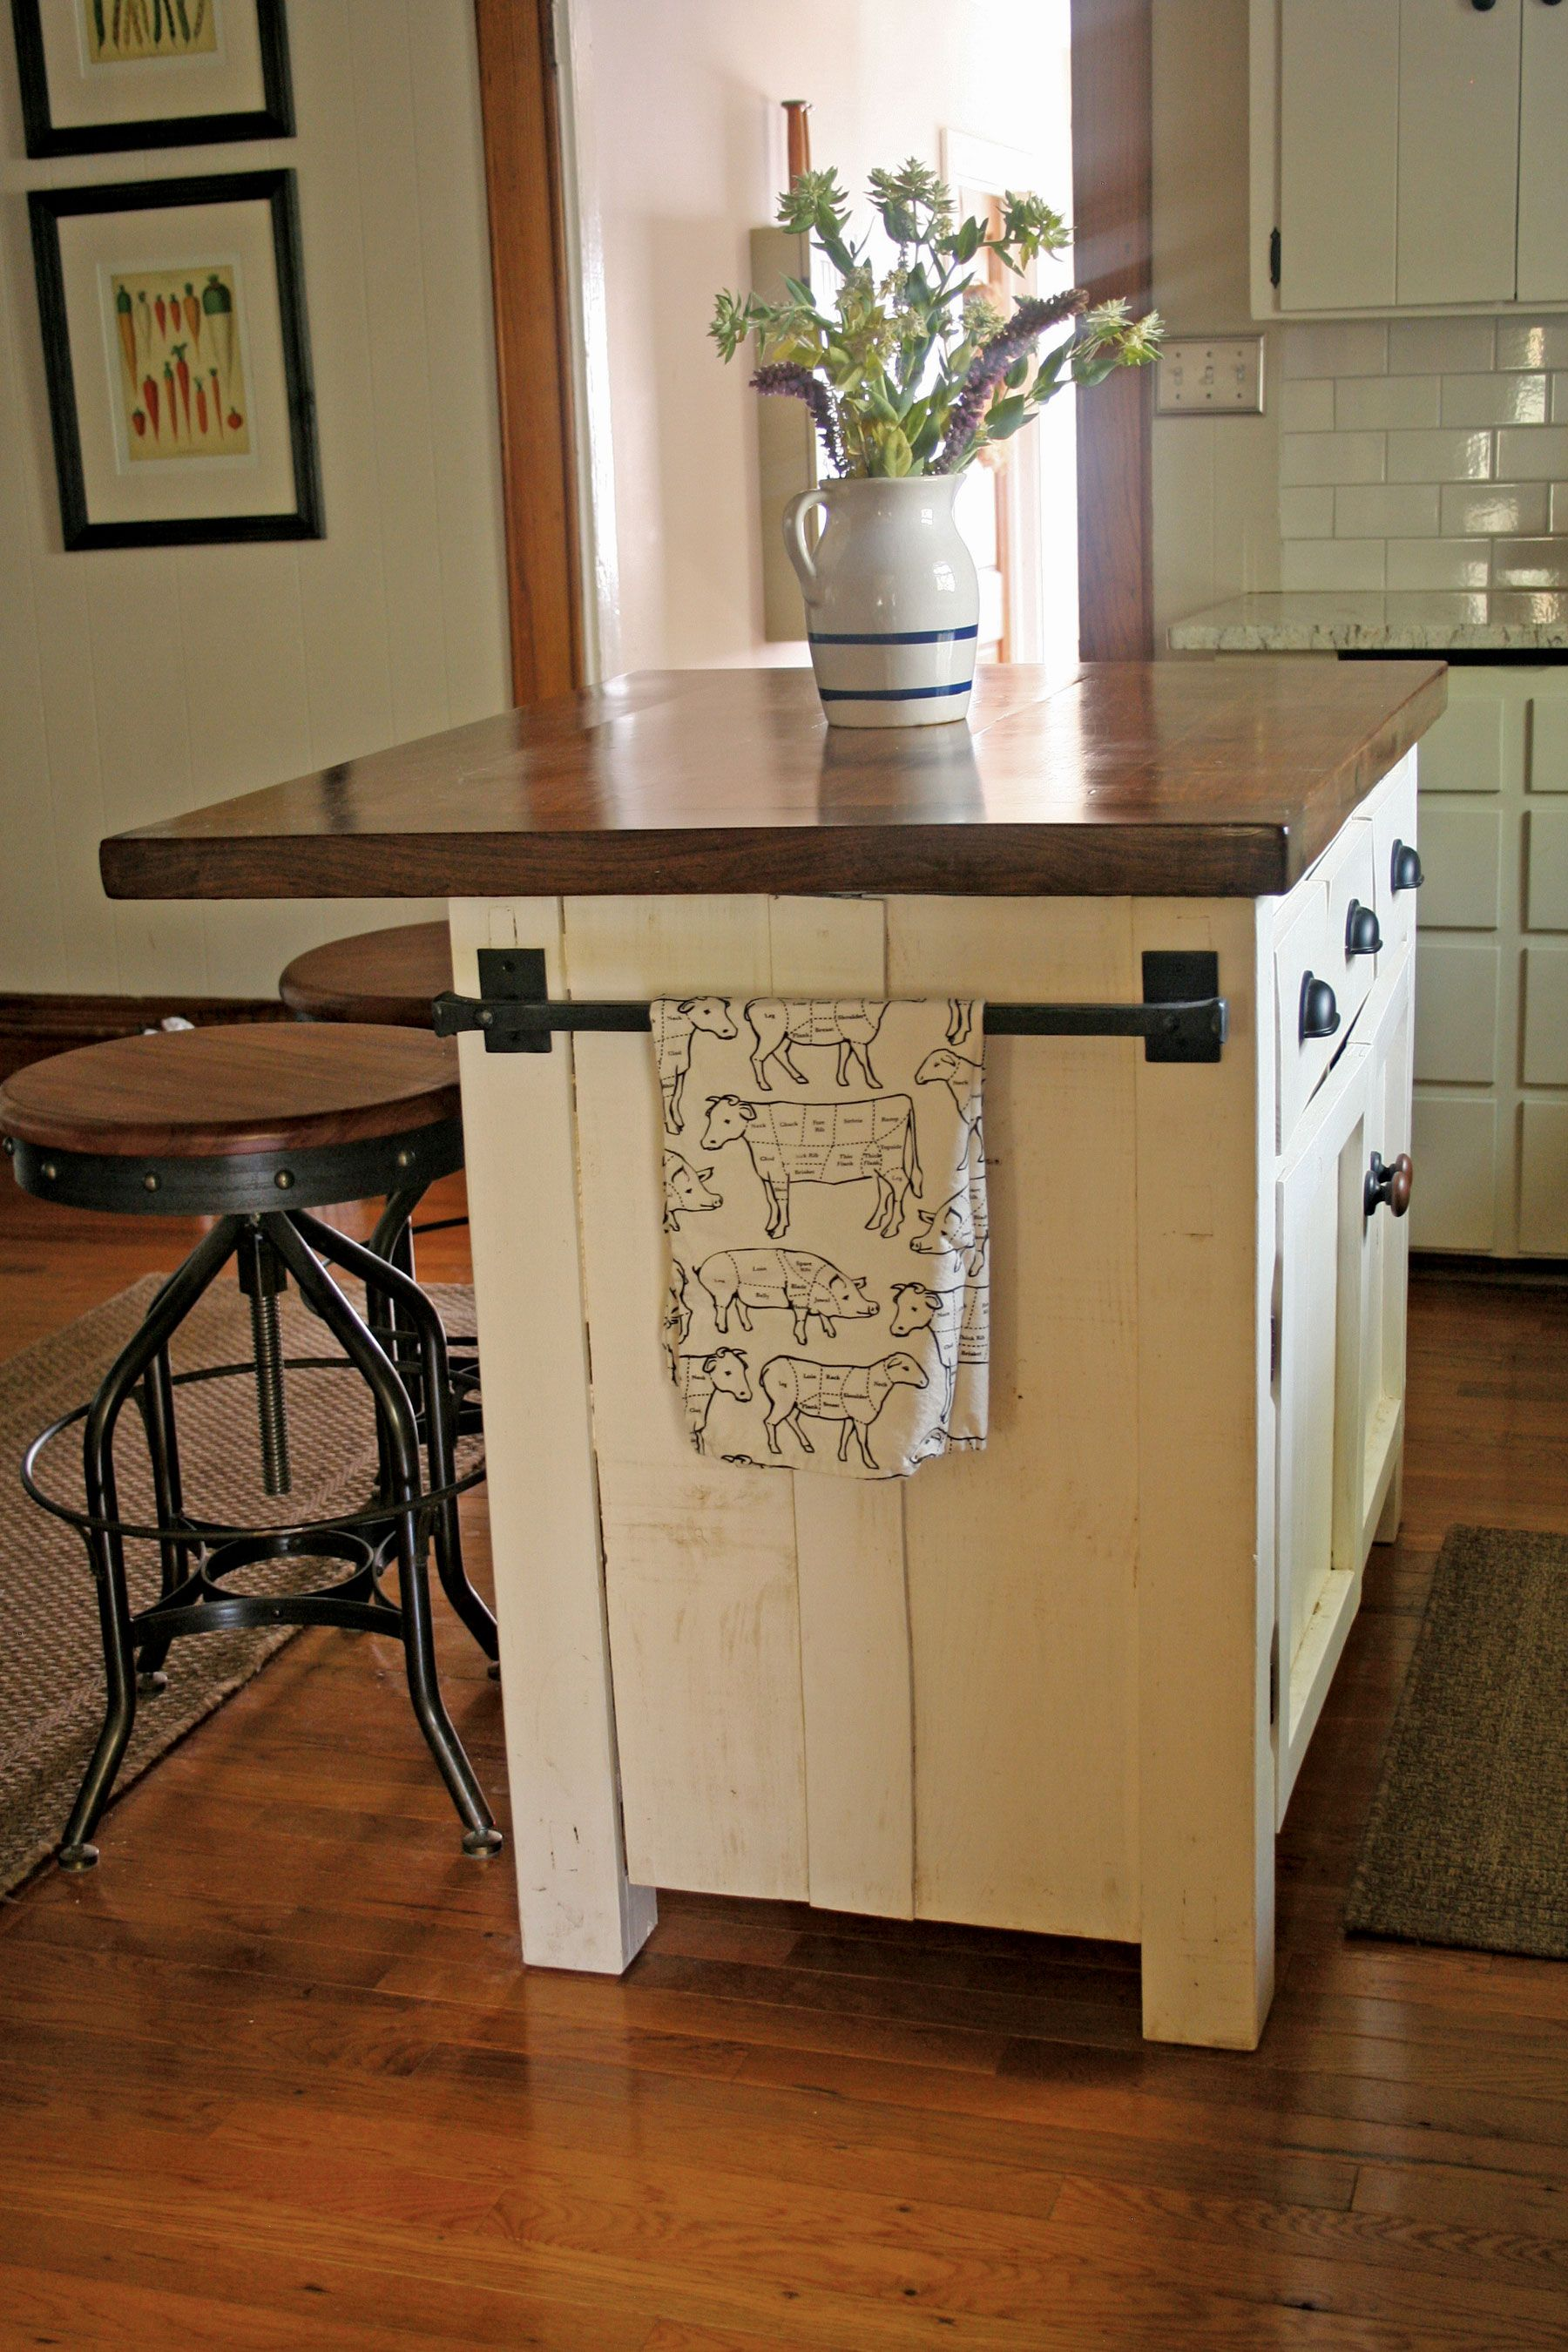 Home Lumber Mill Crafting Dimensional Sawed Timbers Kitchen Island Design Diy Kitchen Storage Kitchen Island With Seating